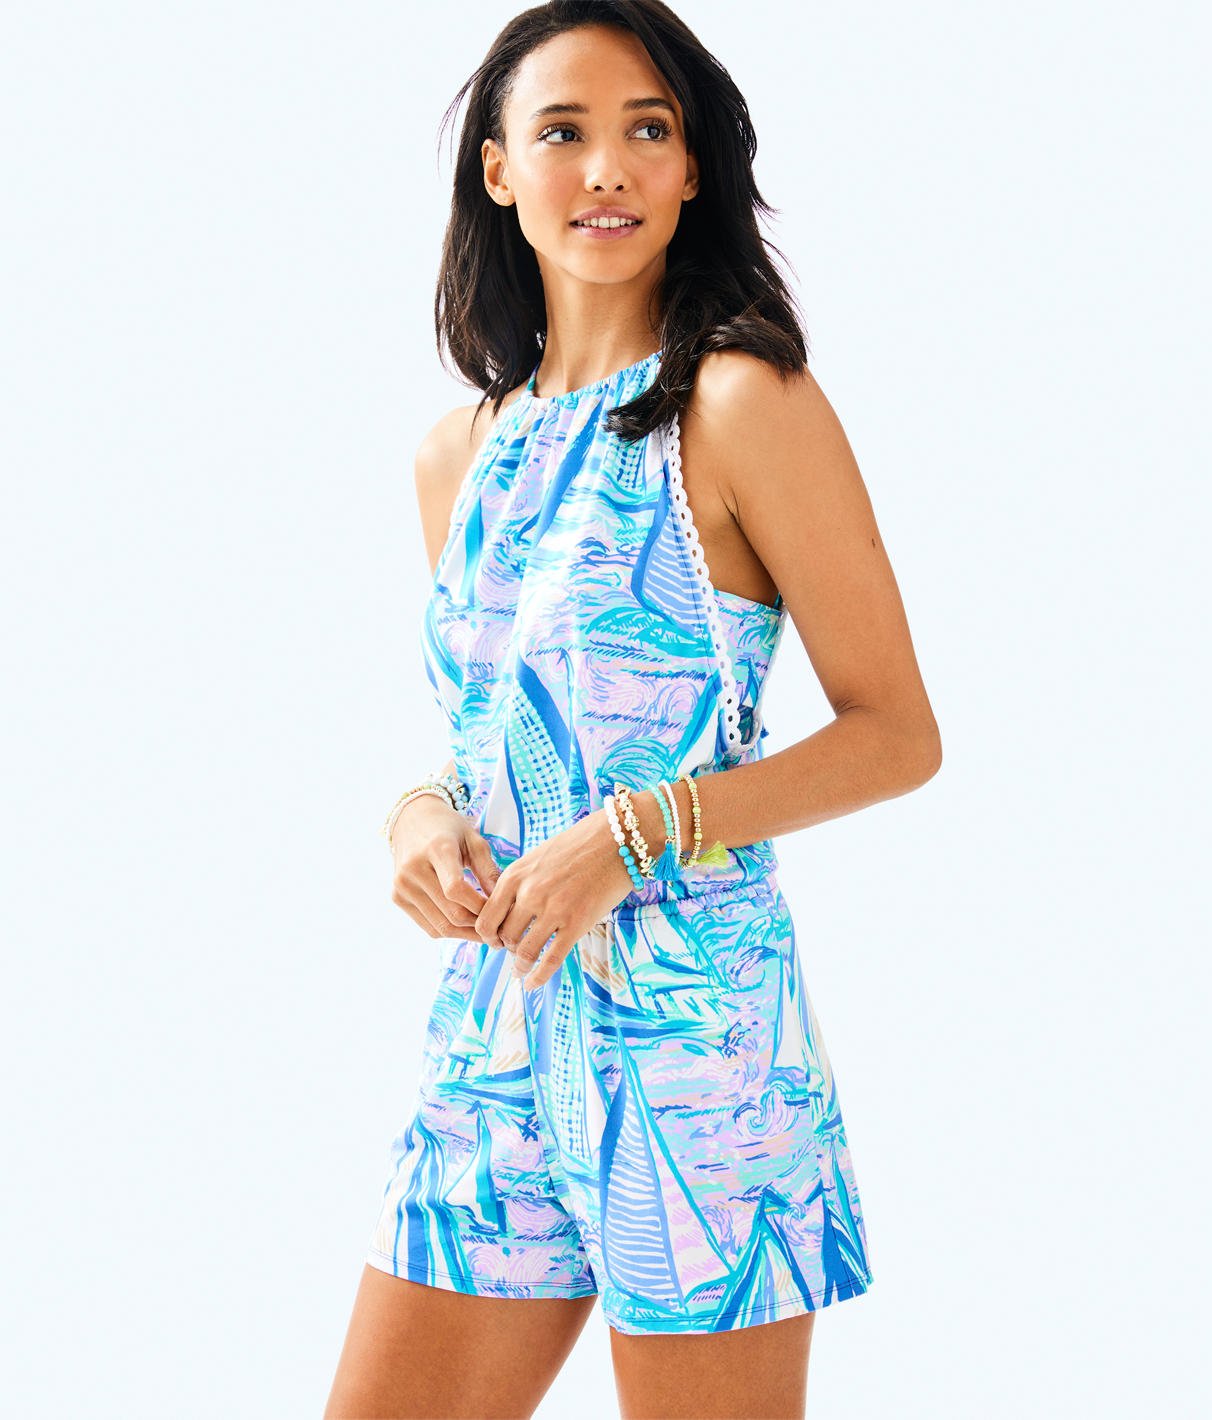 Lilly Pulitzer Lilly Pulitzer Womens Gianni Romper